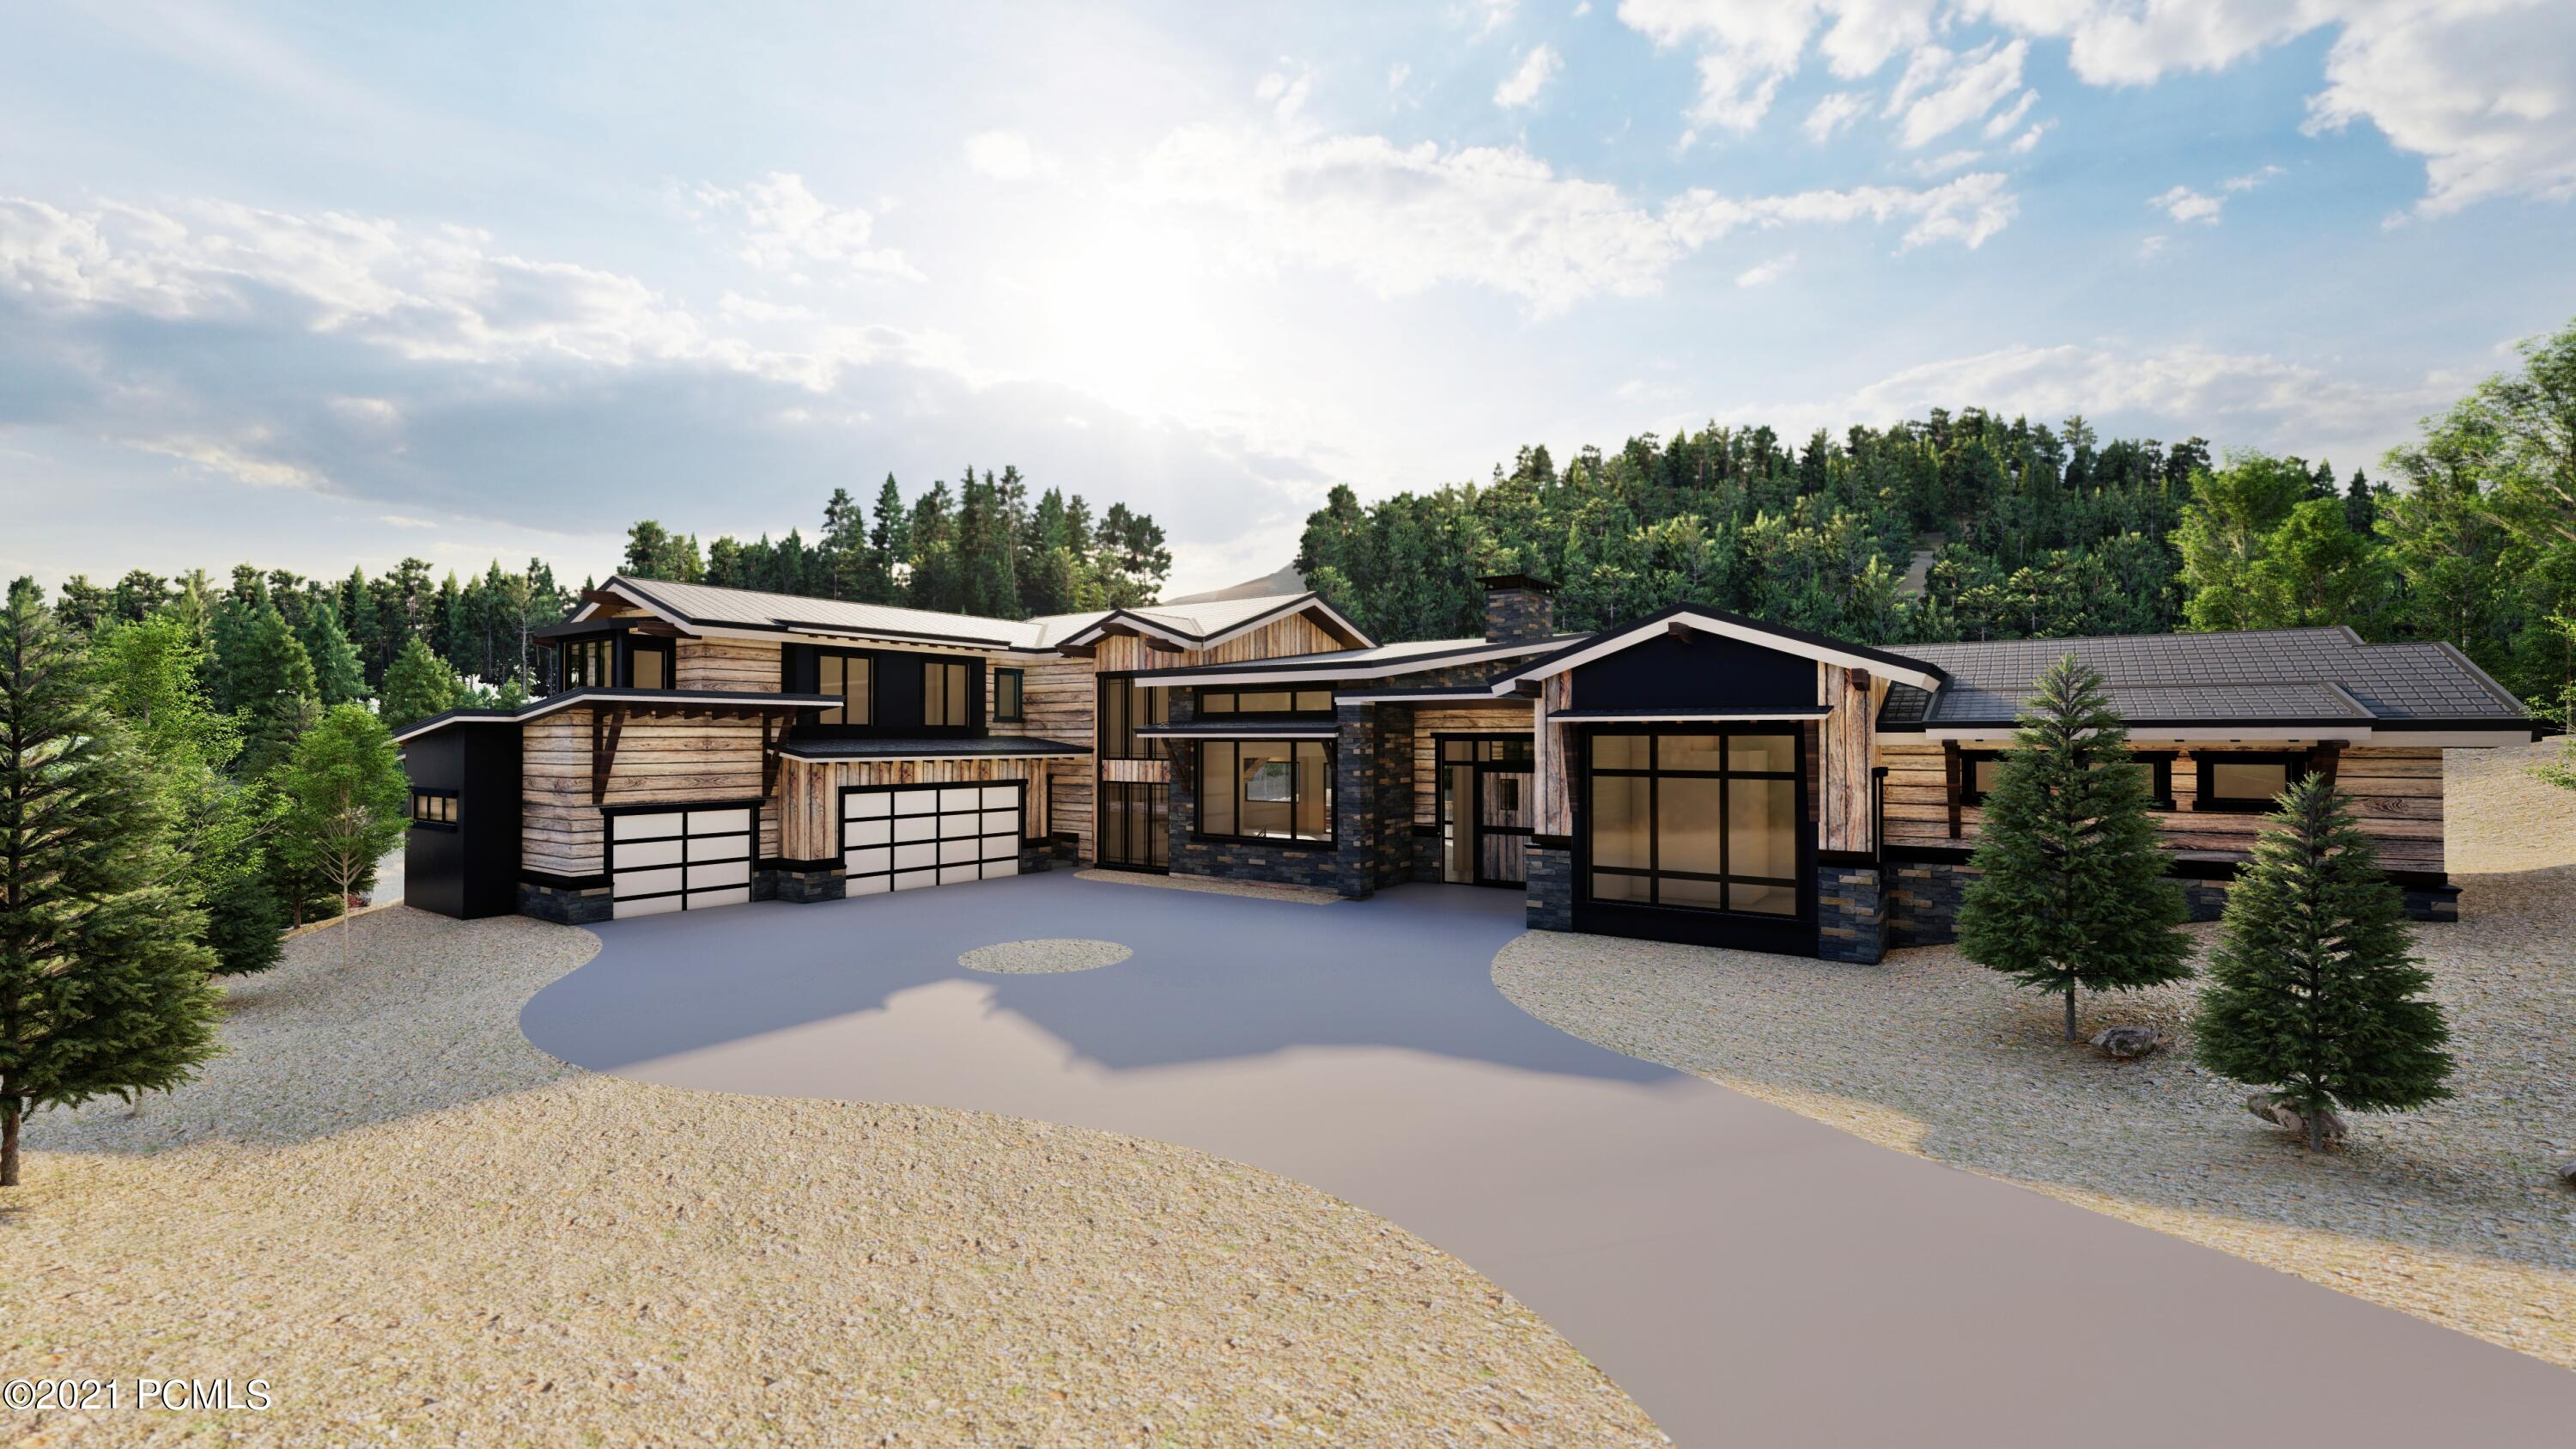 227 White Pine Canyon Road, Park City, Utah 84060, 7 Bedrooms Bedrooms, ,9 BathroomsBathrooms,Single Family,For Sale,White Pine Canyon,12102598